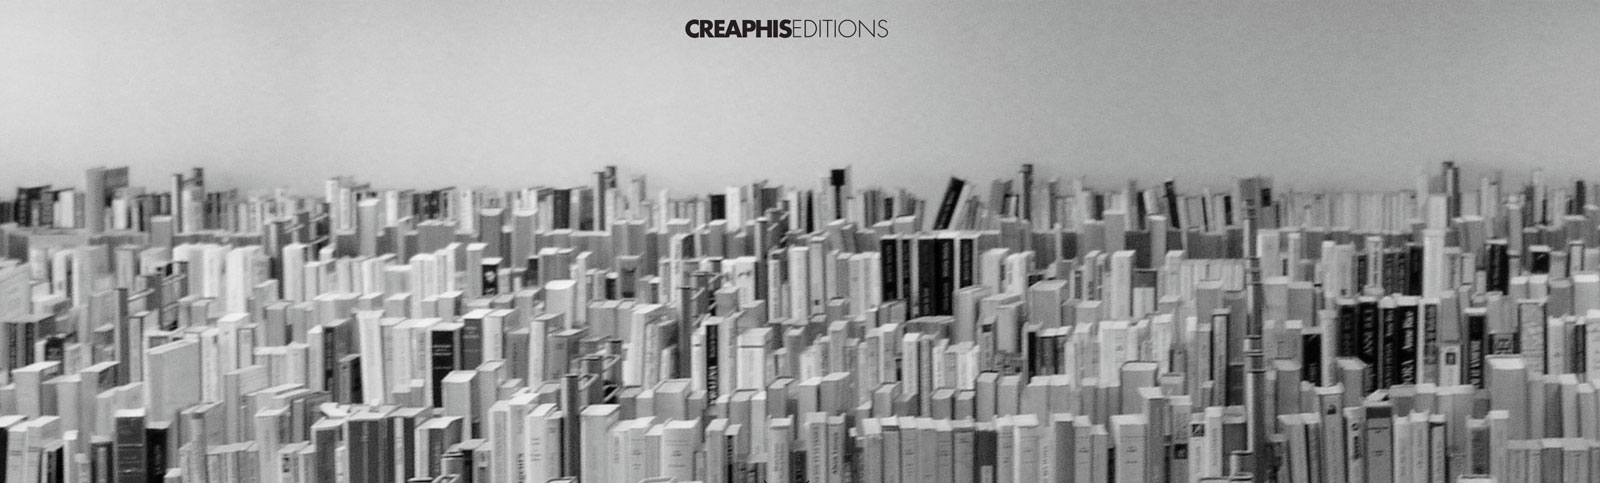 Creaphis Editions